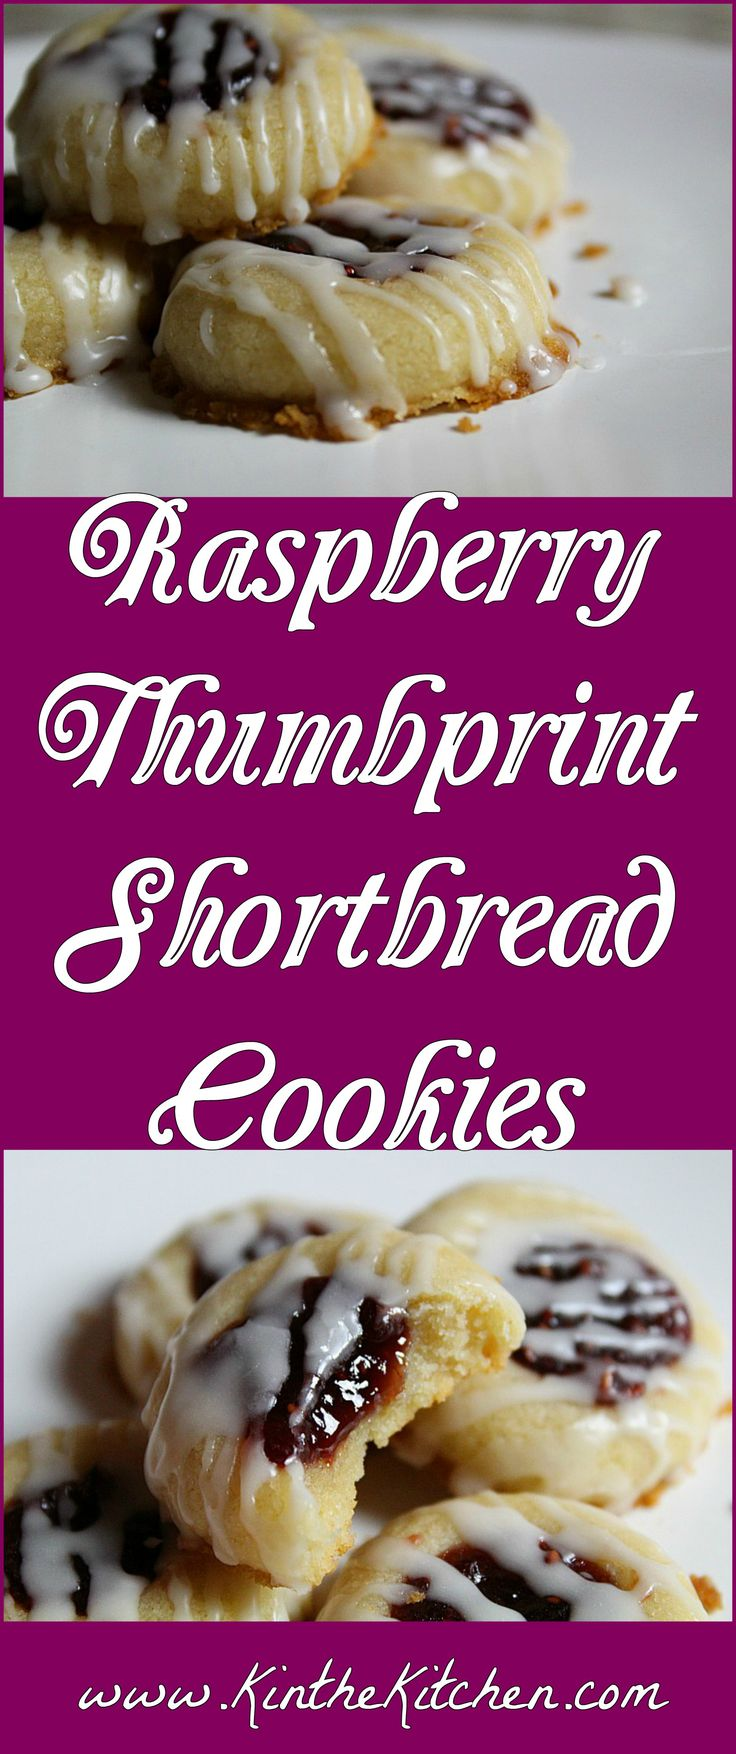 One of my favorite cookie recipes – these buttery shortbread cookies are topped with raspberry preserves and drizzled with glaze icing.